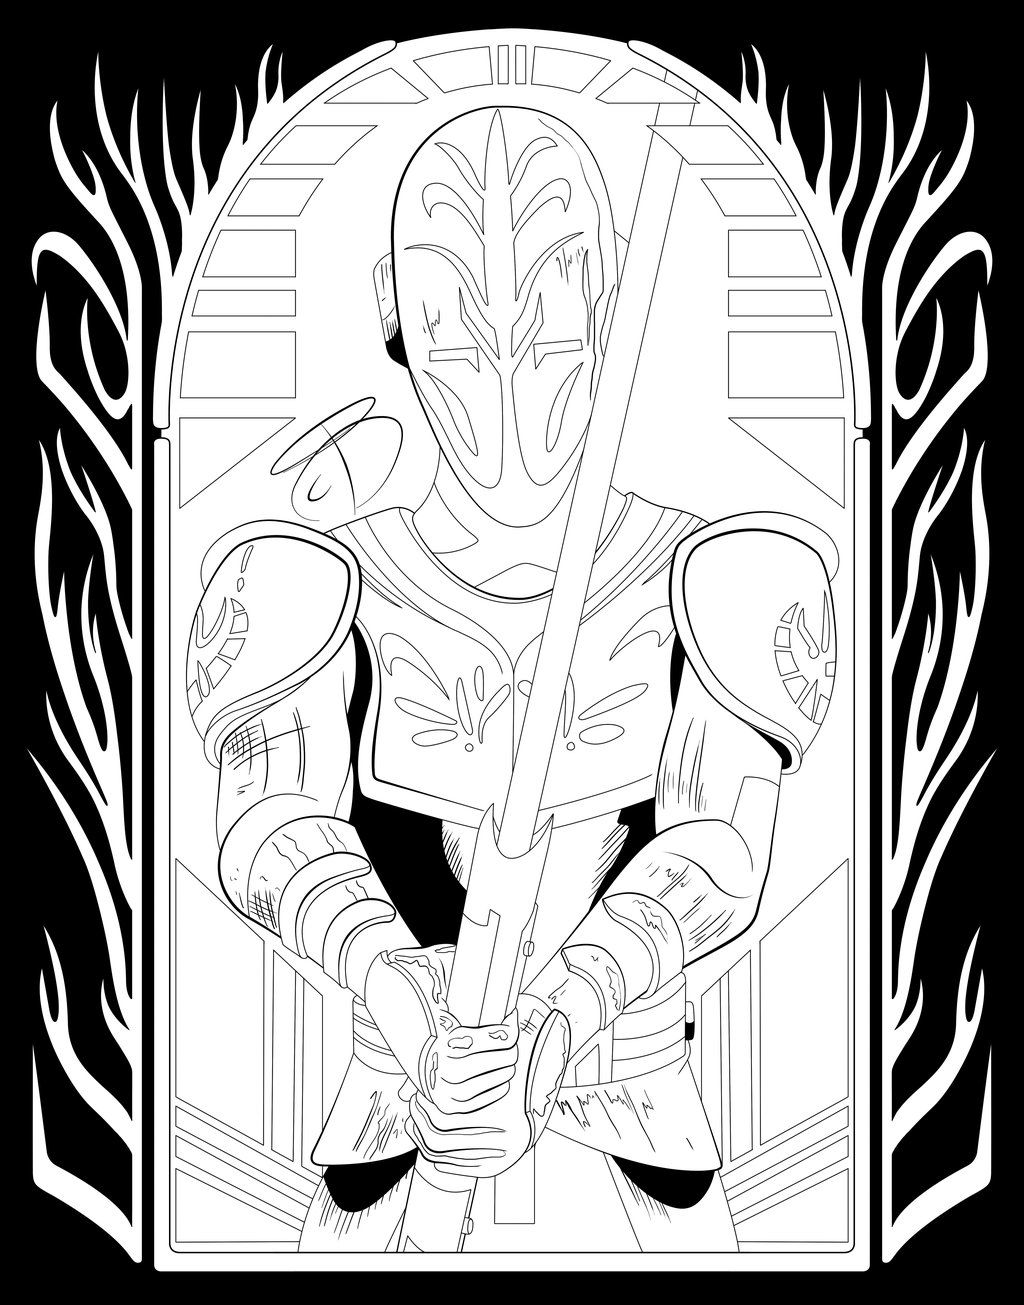 Coloring Pages Jedi Temple Guard by RCBrock on DeviantArt Coloring PagesTemplesStar Wars